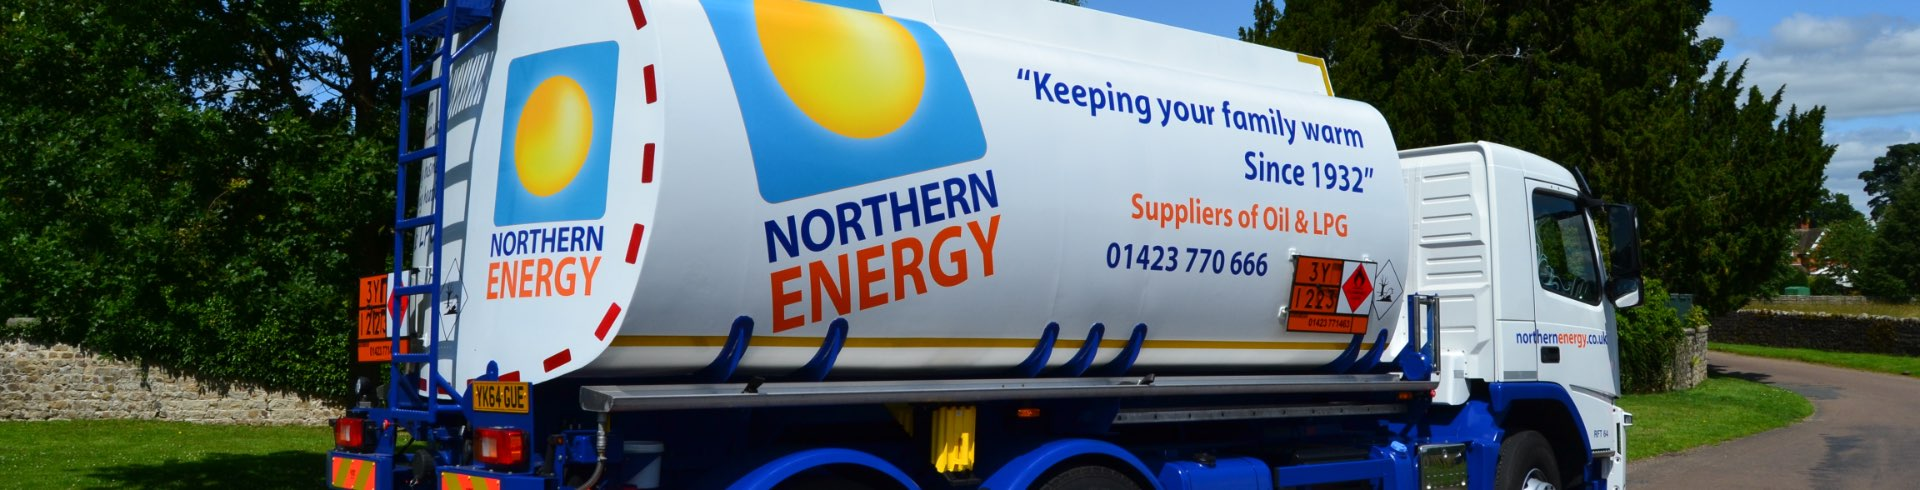 northern energy truck on a road